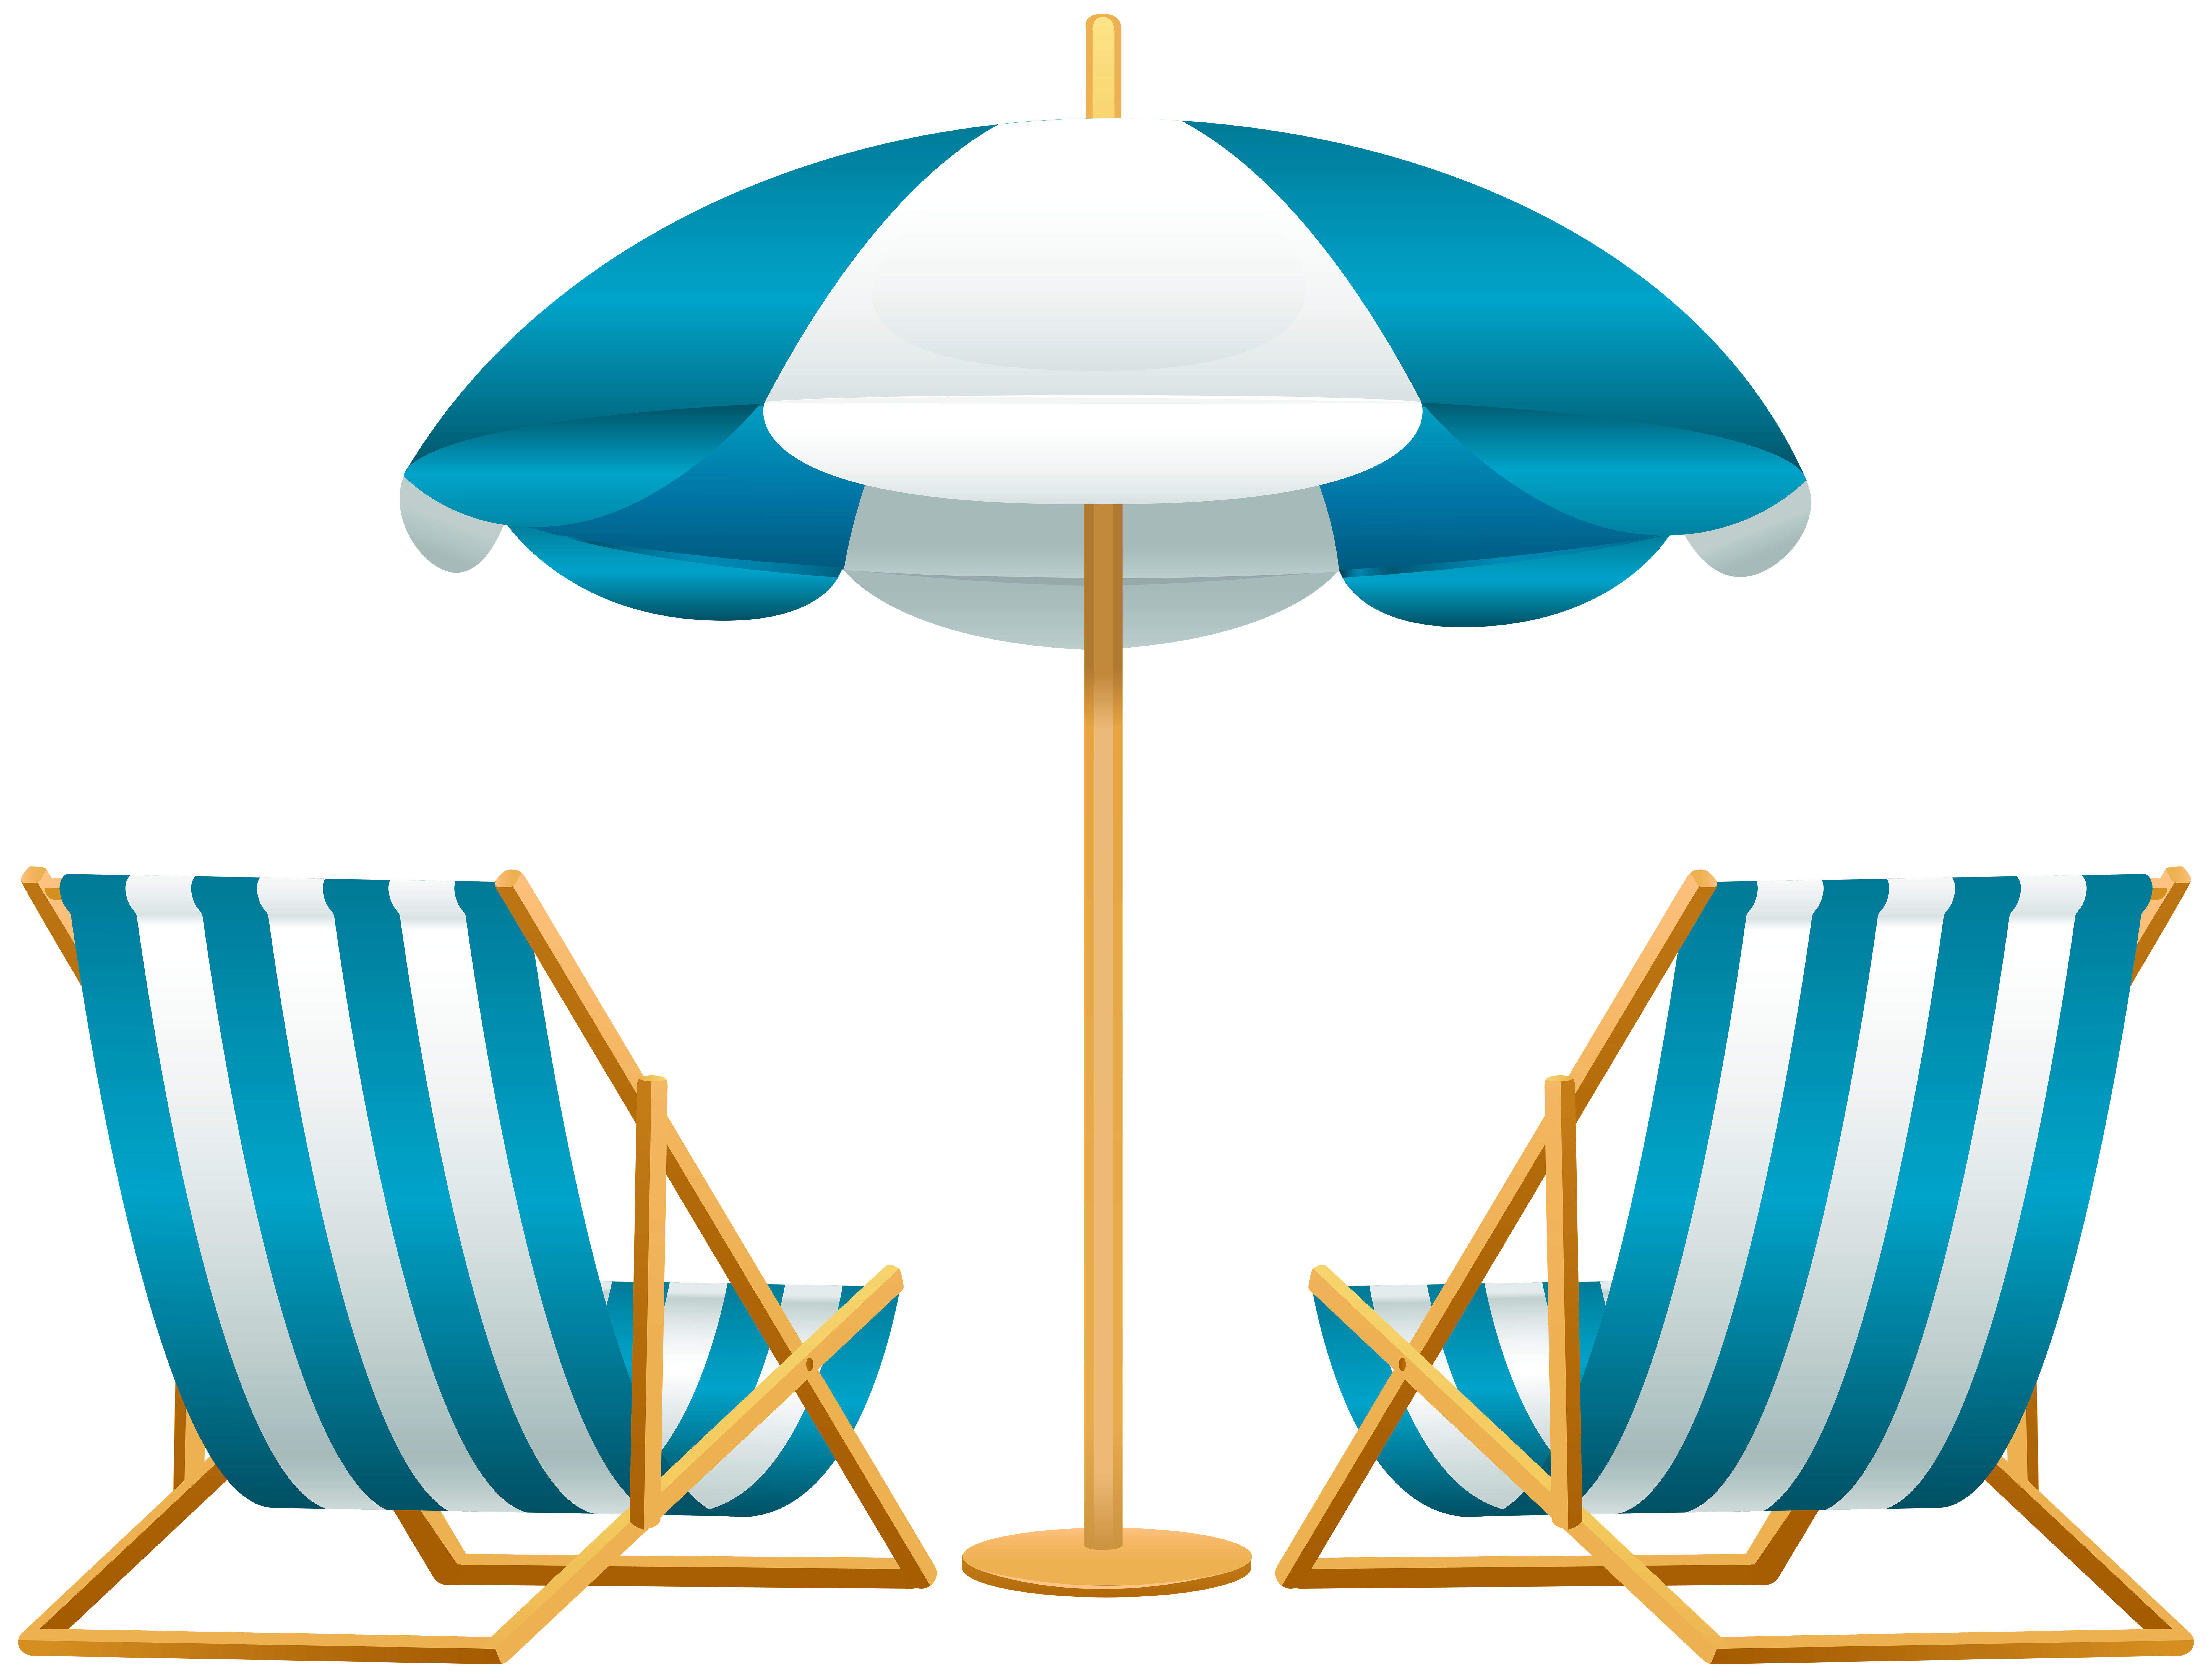 Vacation clipart. Beach umbrella with chairs